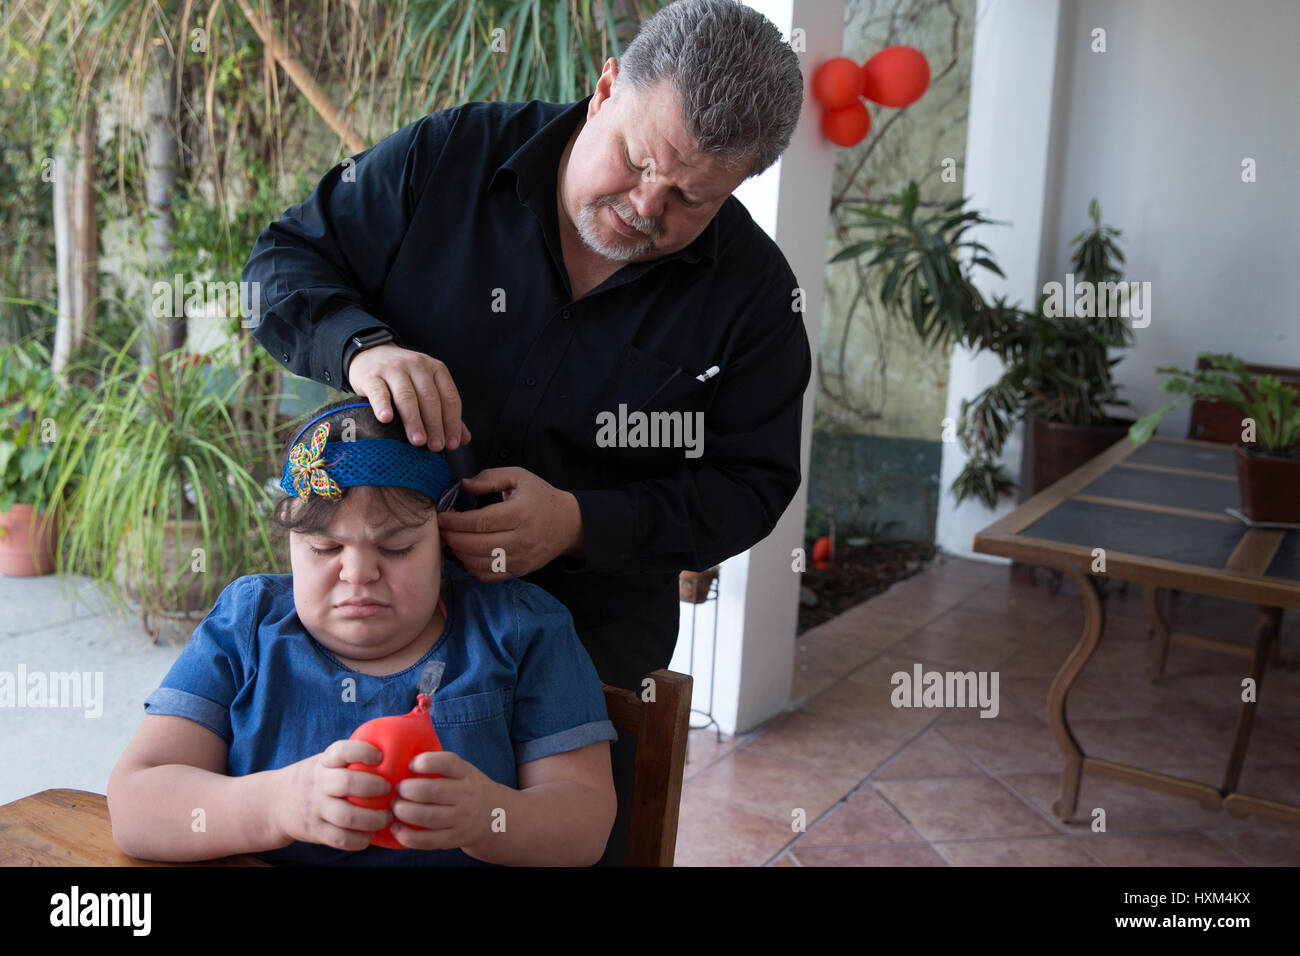 Ana Ximena Navarro and her father Jesús Navarro Torres, at their home in Guadalajara, Mexico on February 22, - Stock Image